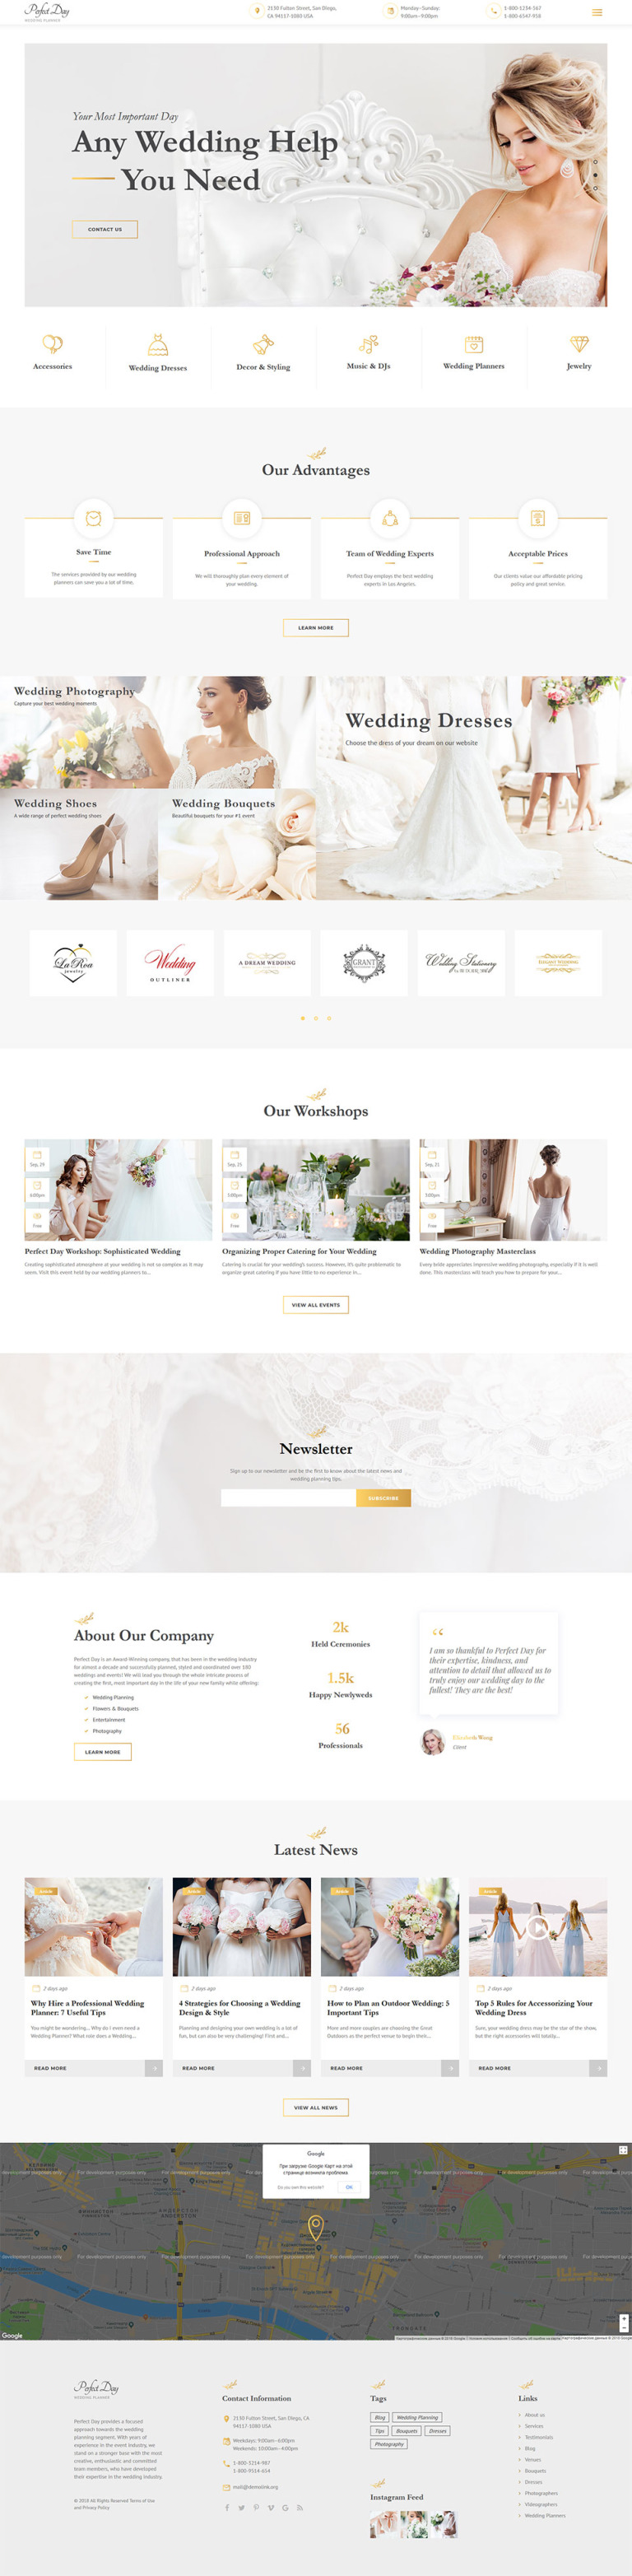 Perfect Bride Website Template New Screenshots BIG